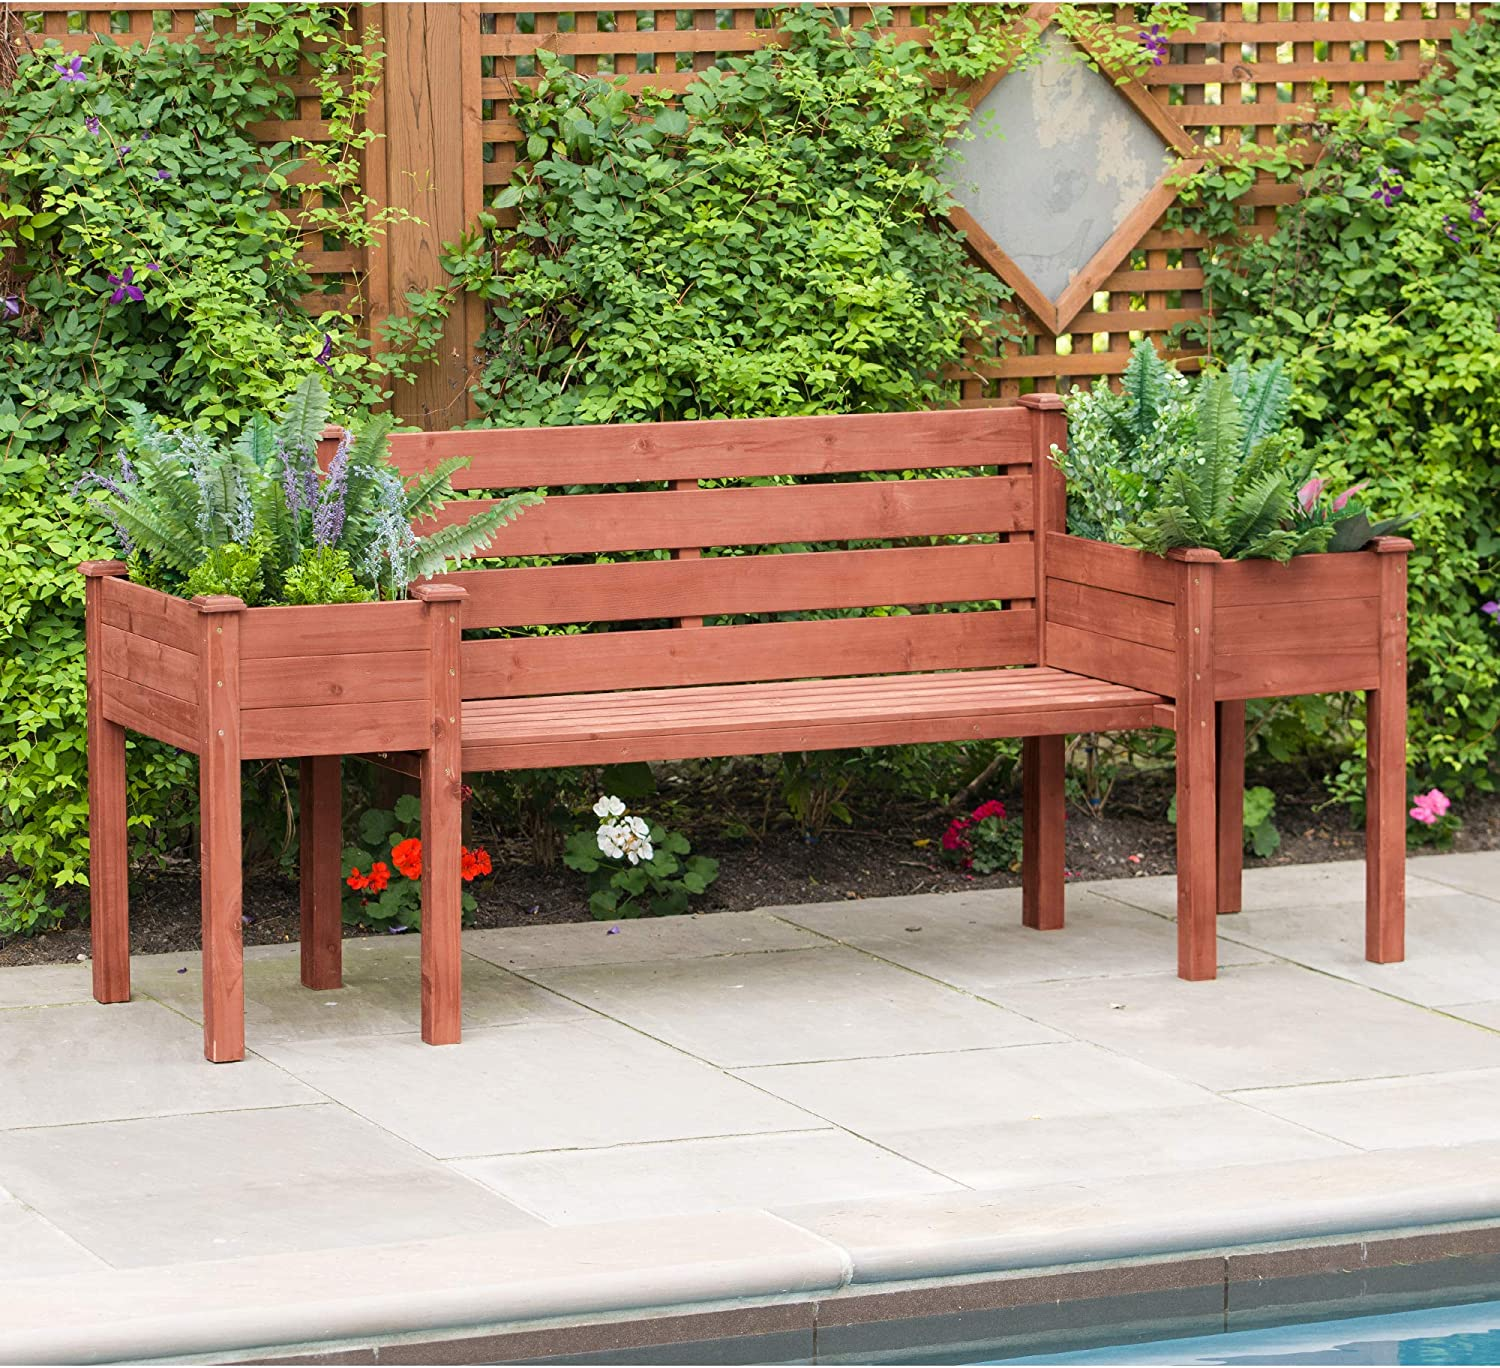 Leisure Season PBB7821 Wood Planter Bench - Brown - 1 Piece - Outdoor Wooden Seat with Raised Plant - Rustic Garden and Yard Decoration - Roses, Herb, Flower Display - Deck, Patio and Pergola Seating